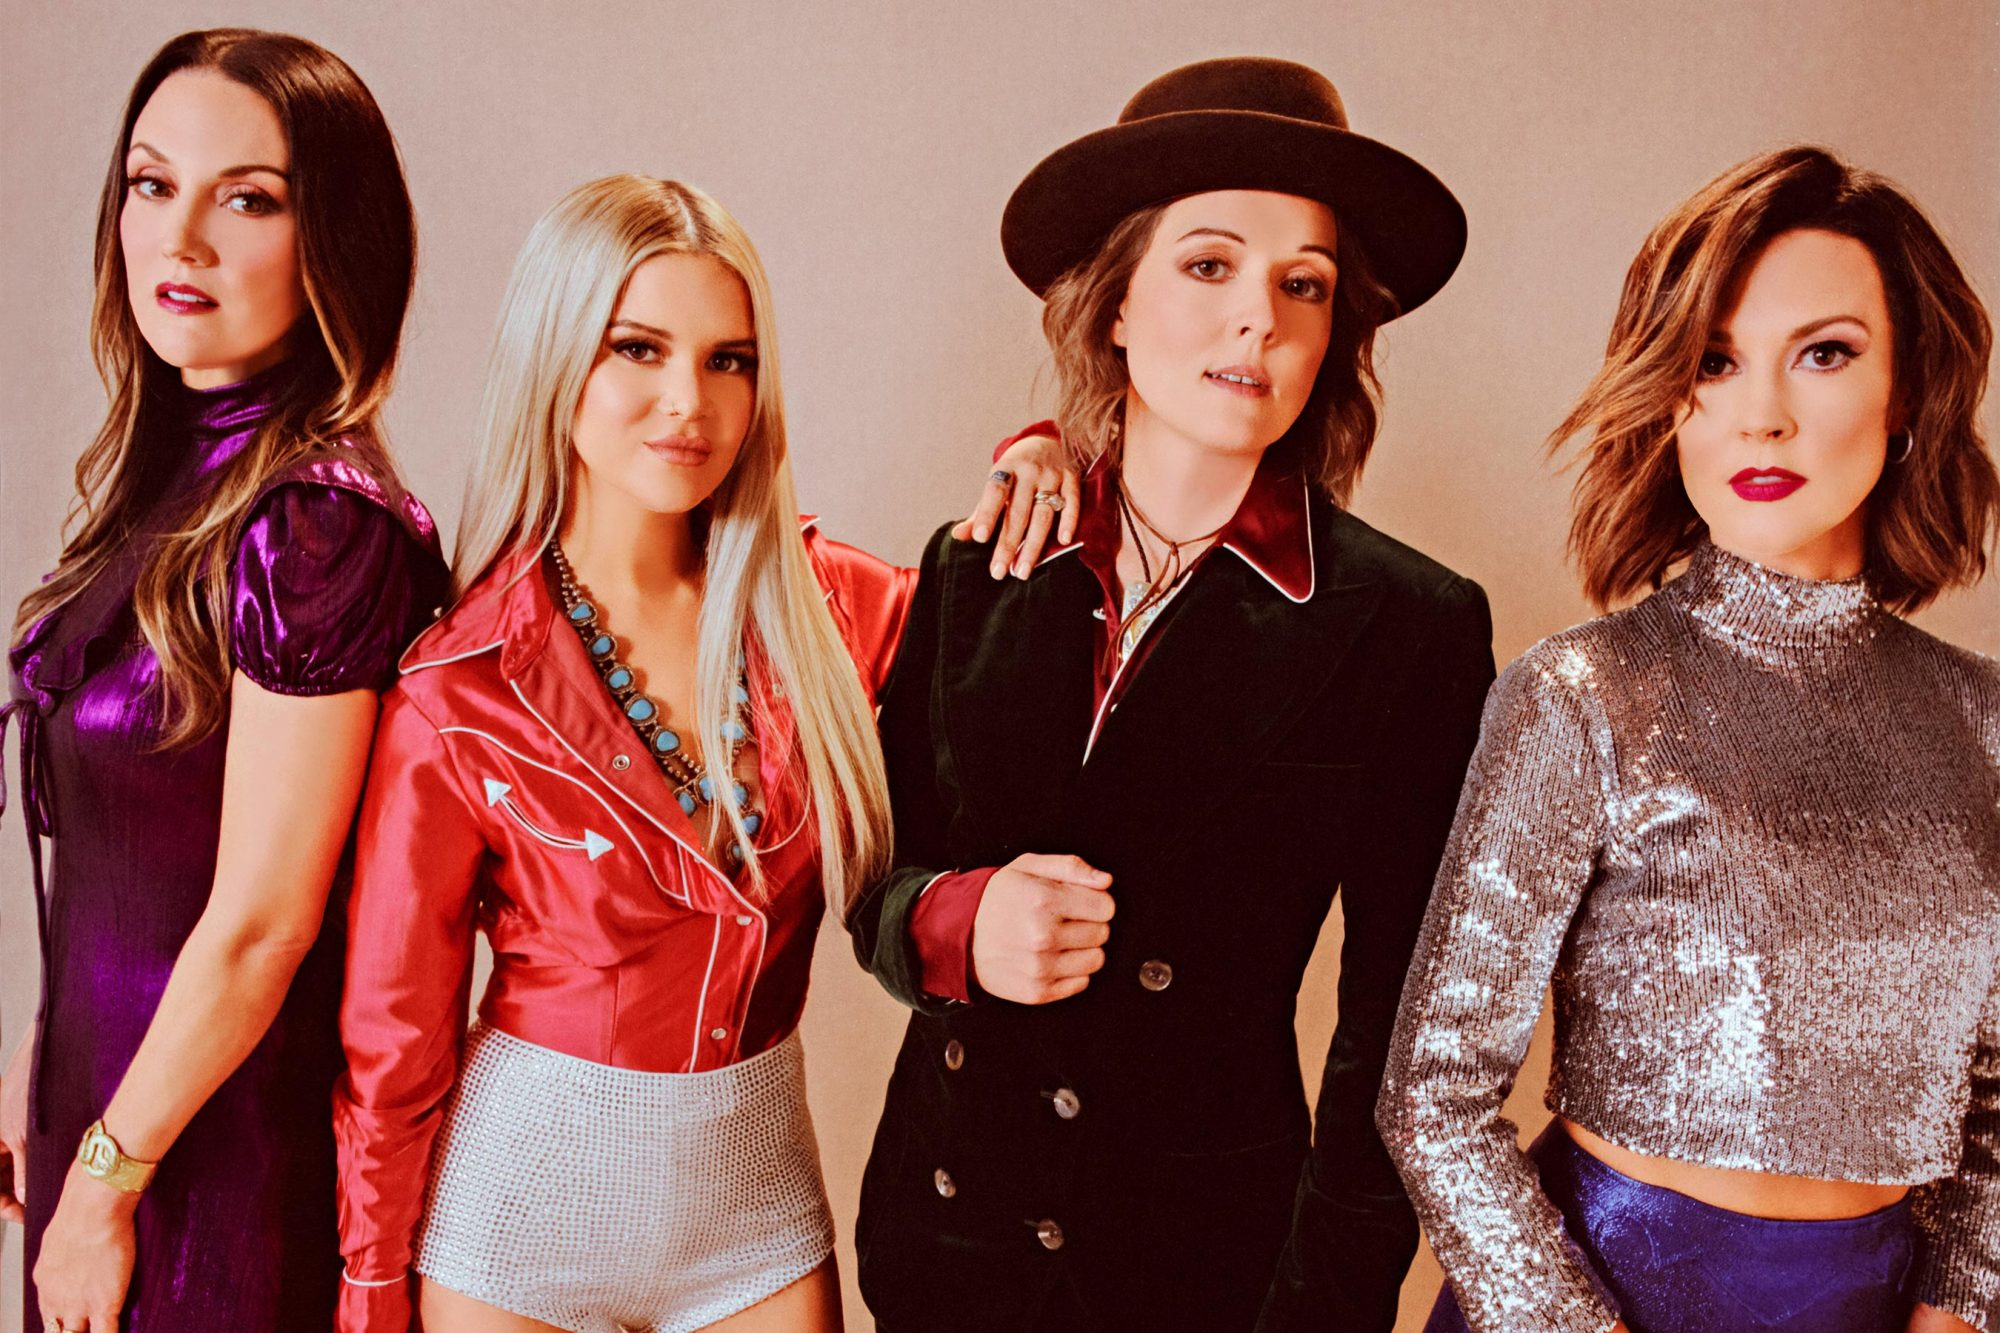 THE HIGHWOMEN Publicity photo (2019) Maren Morris, Brandi Carlile, Amanda Shires, Natalie Hemby